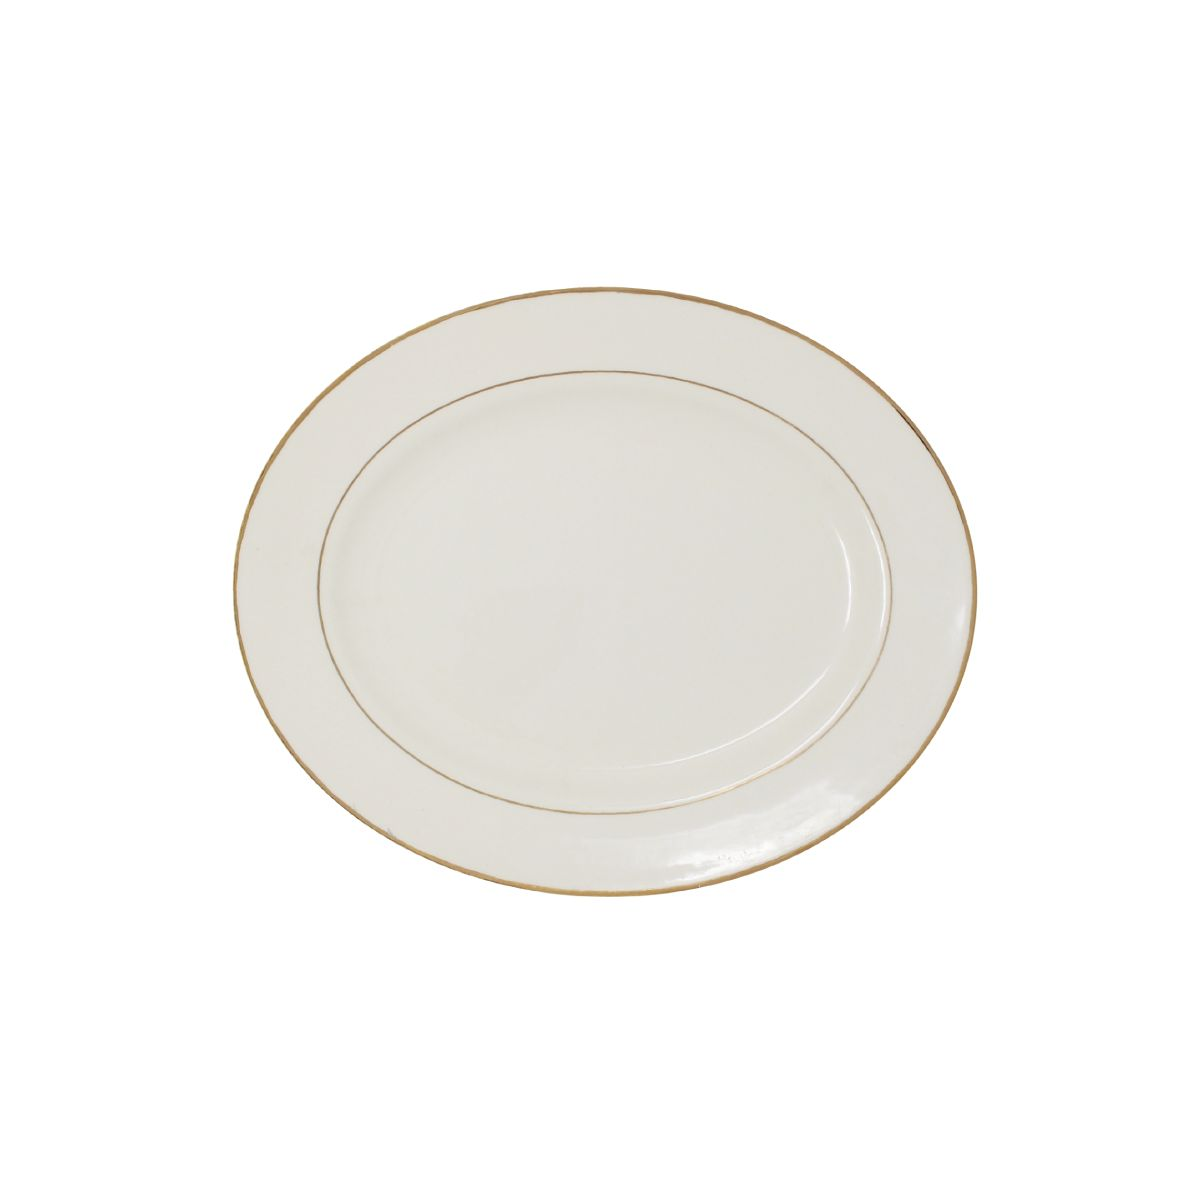 Platter Beige With Gold Band 9""